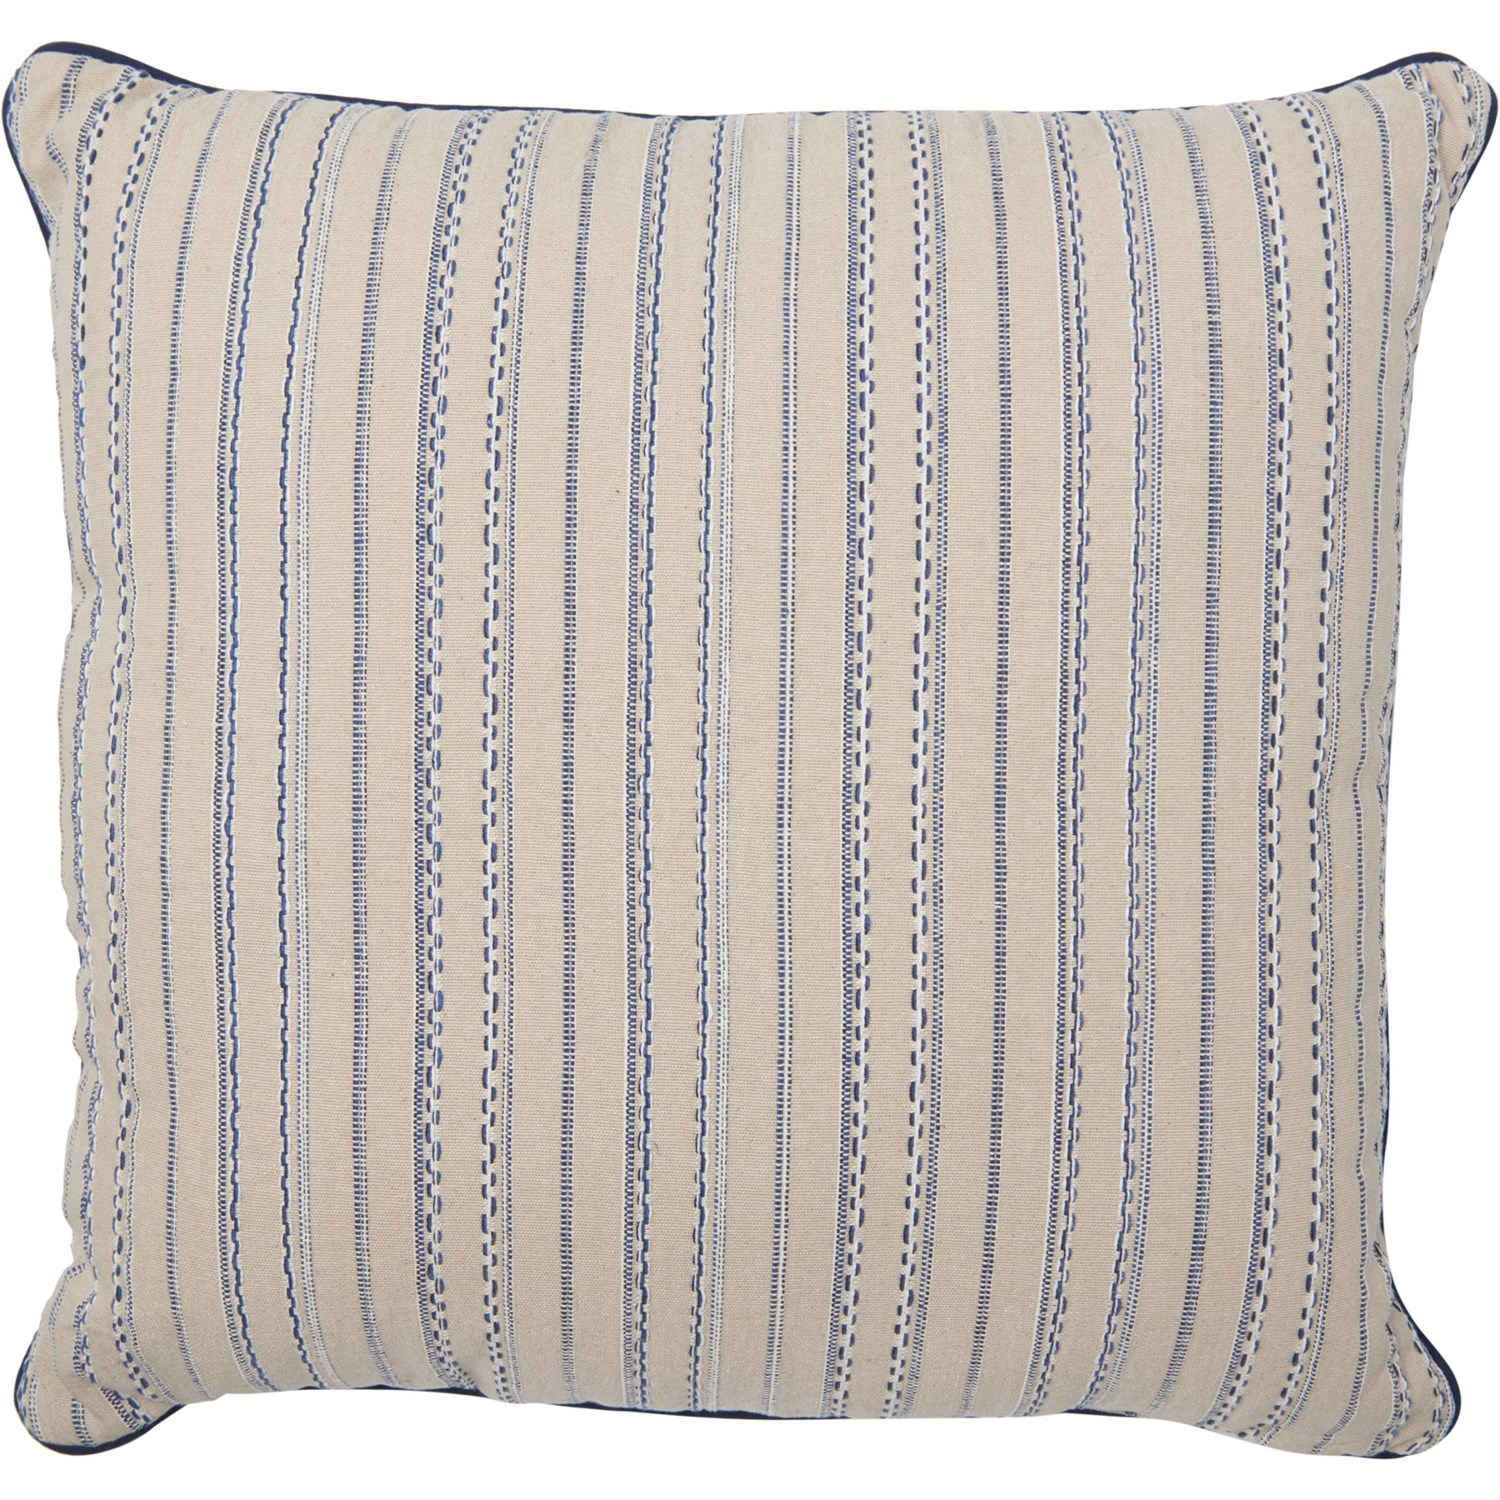 Made In India Natural Stripe Woven